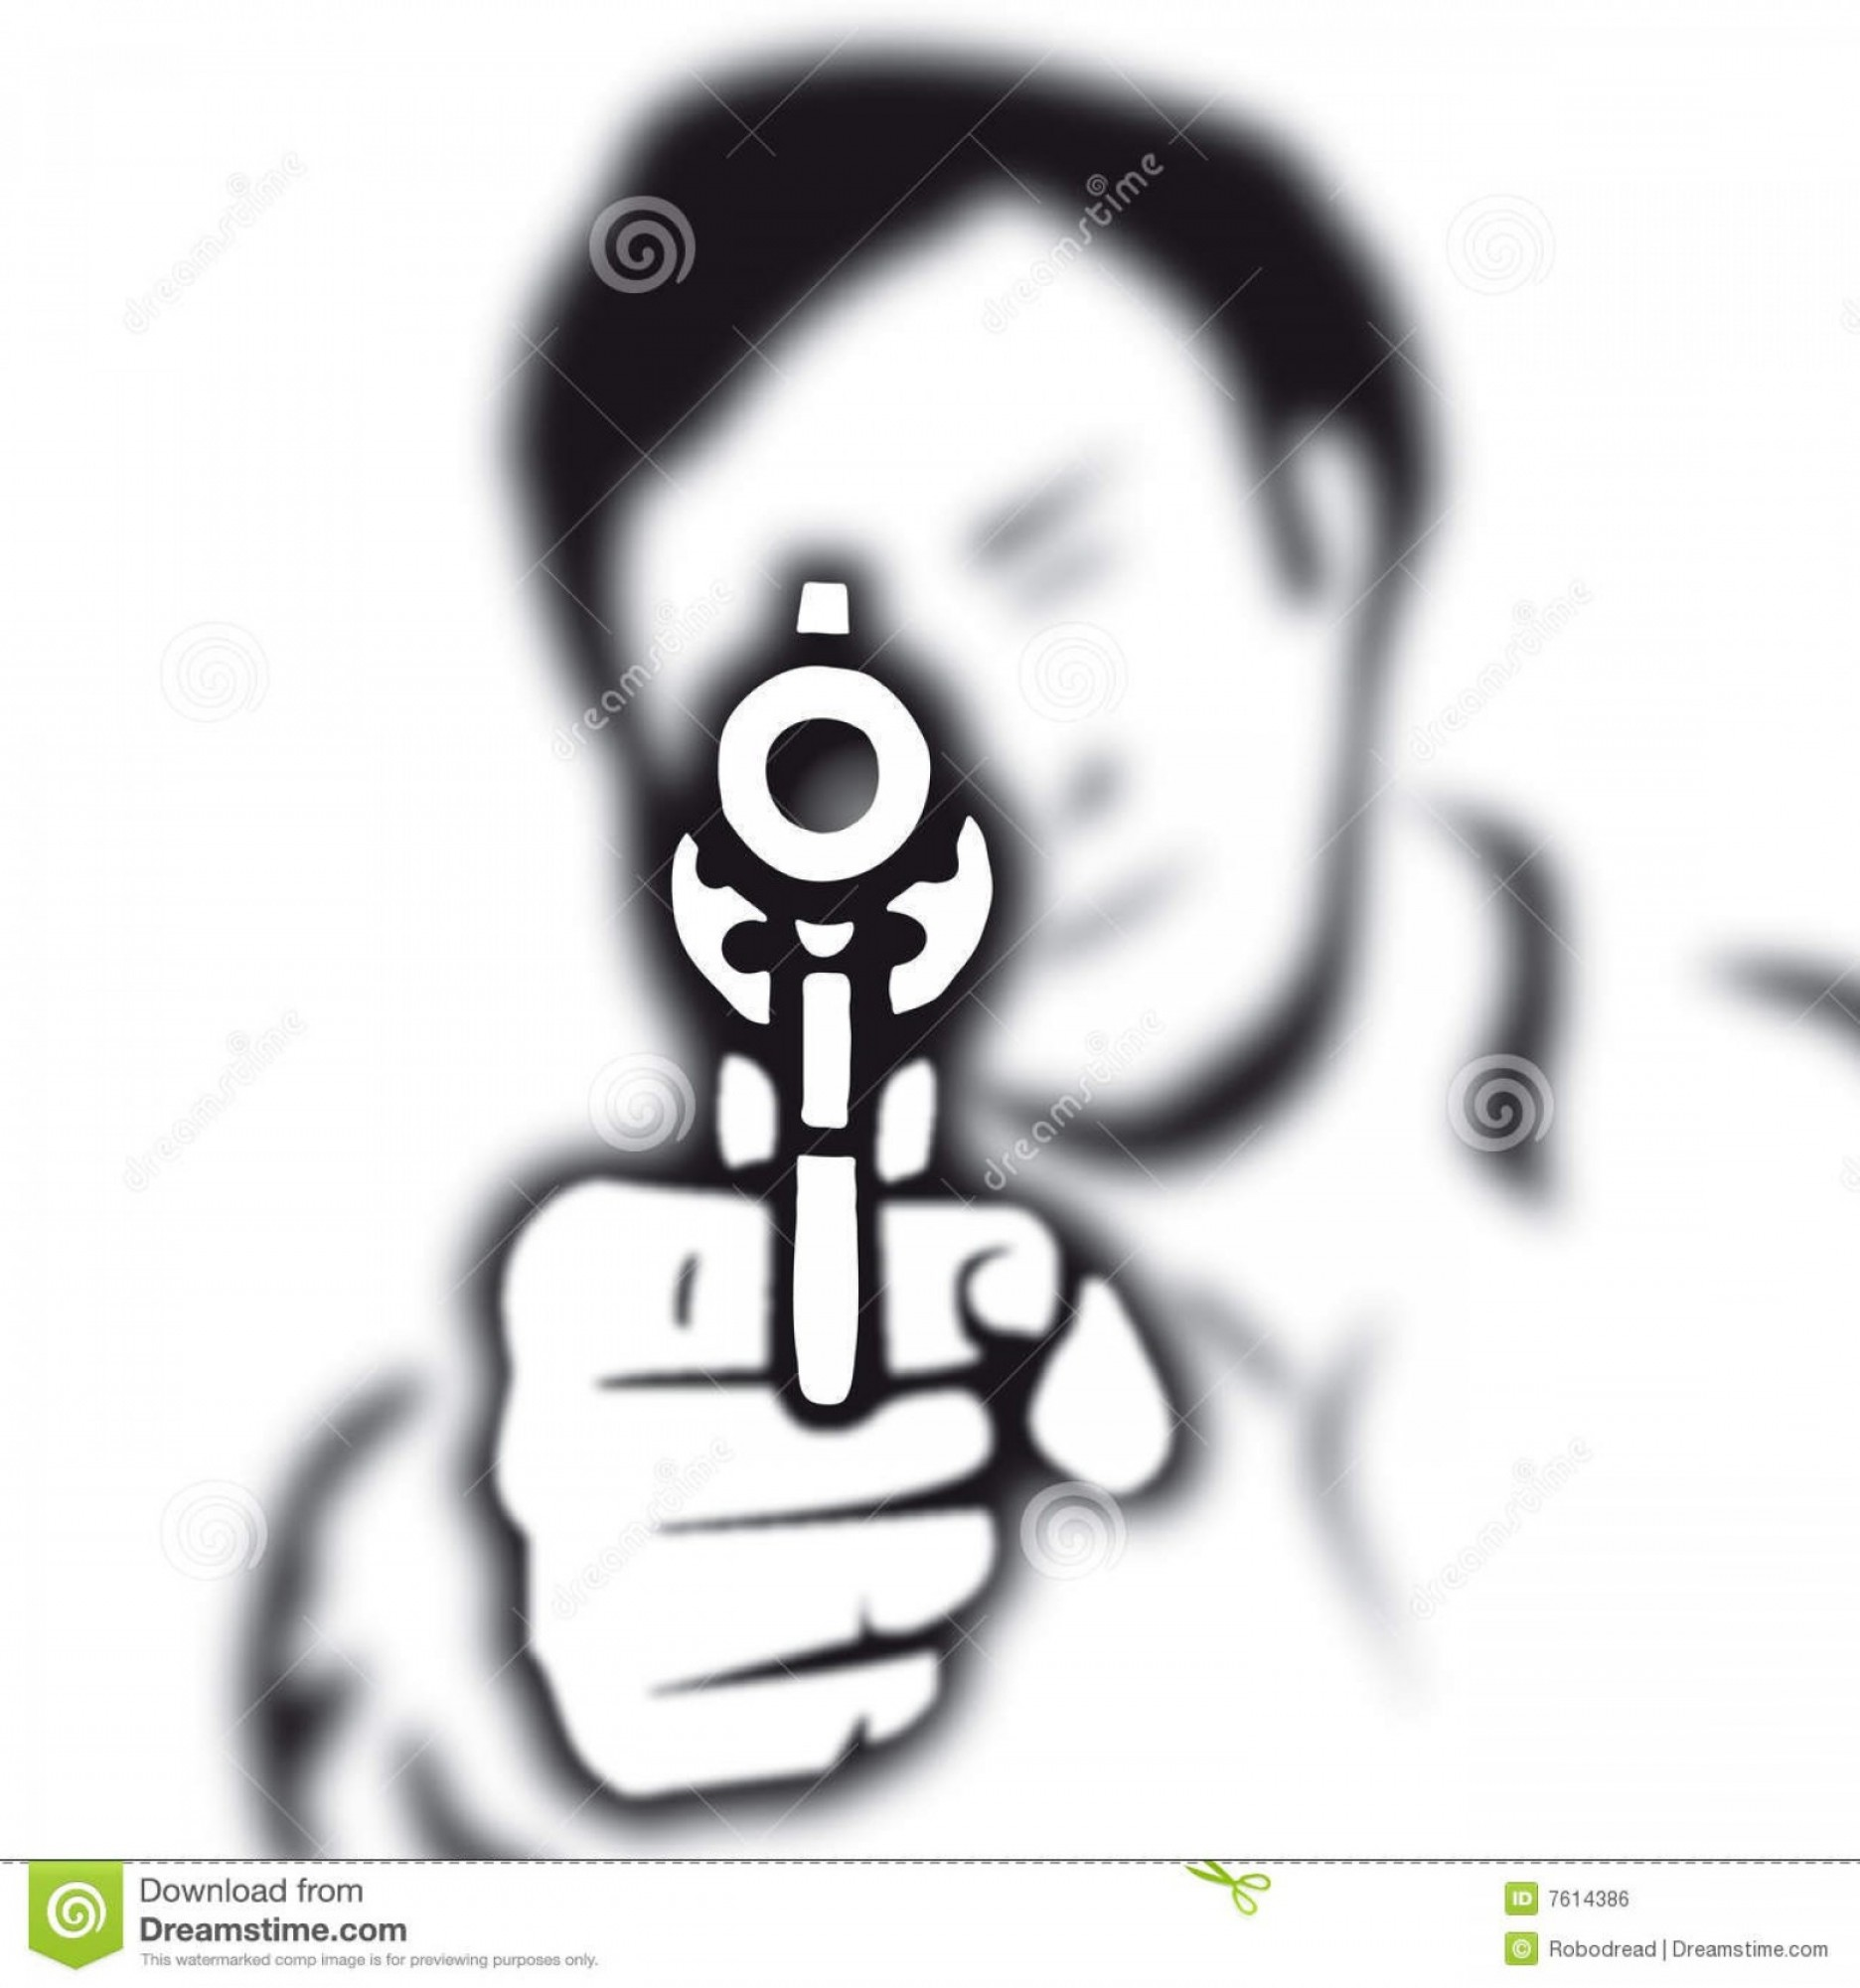 Finger Gun To Head Vector: Royalty Free Stock Image Gun Vector Image